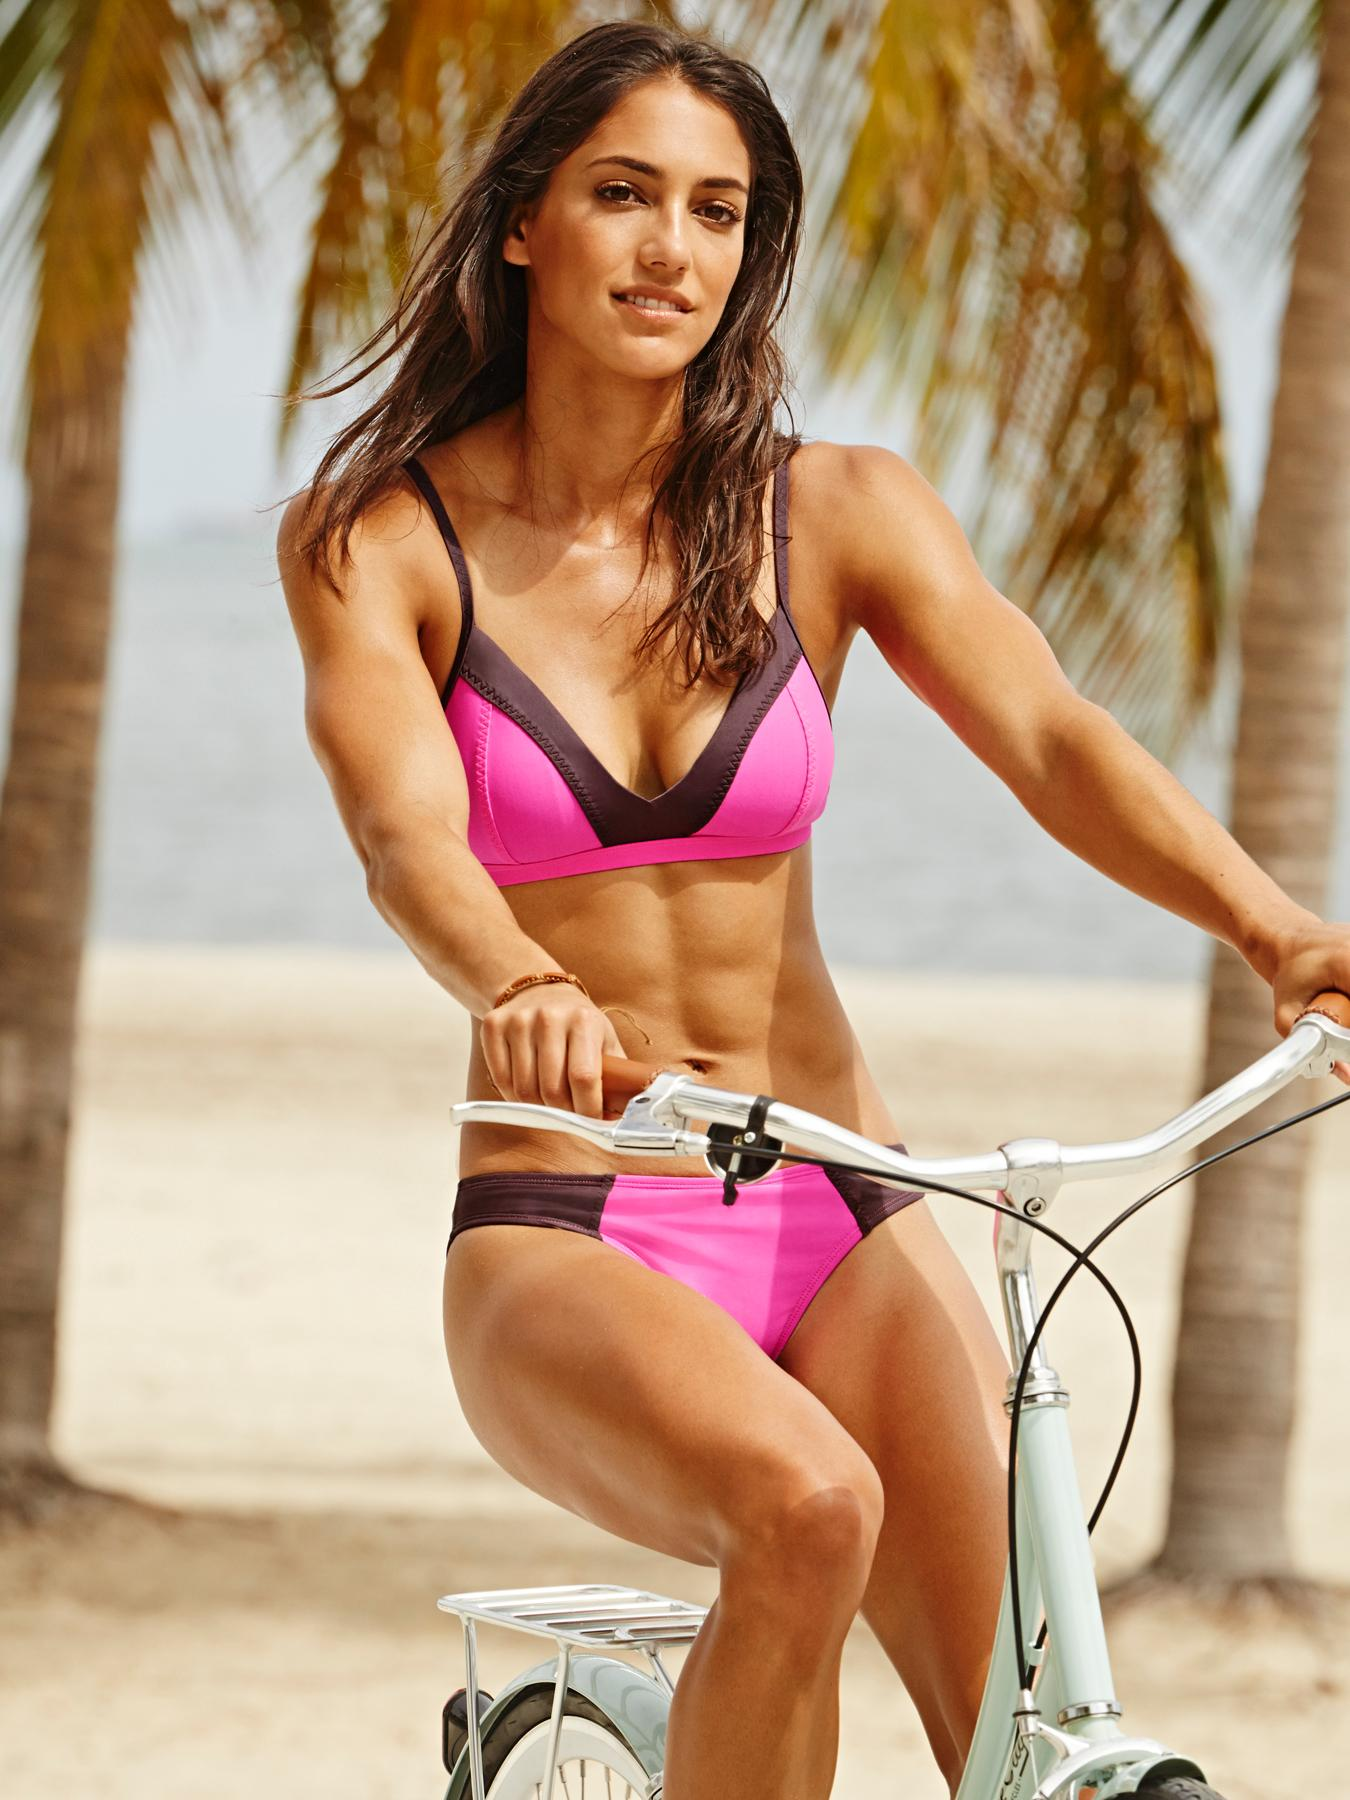 Allison Stokke on Cycling